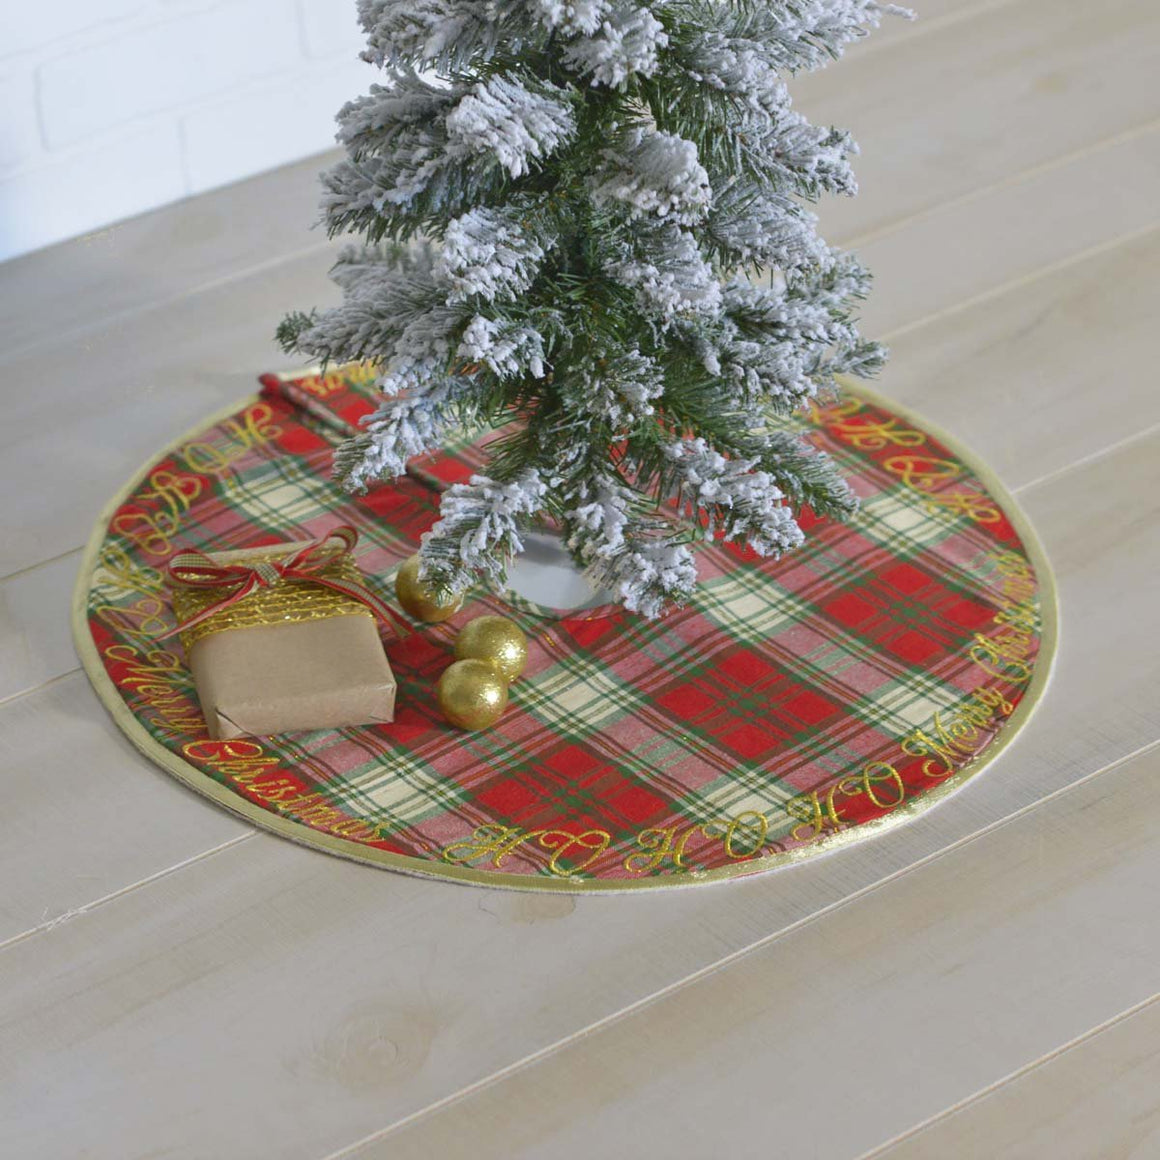 HO HO Holiday Tree Skirt